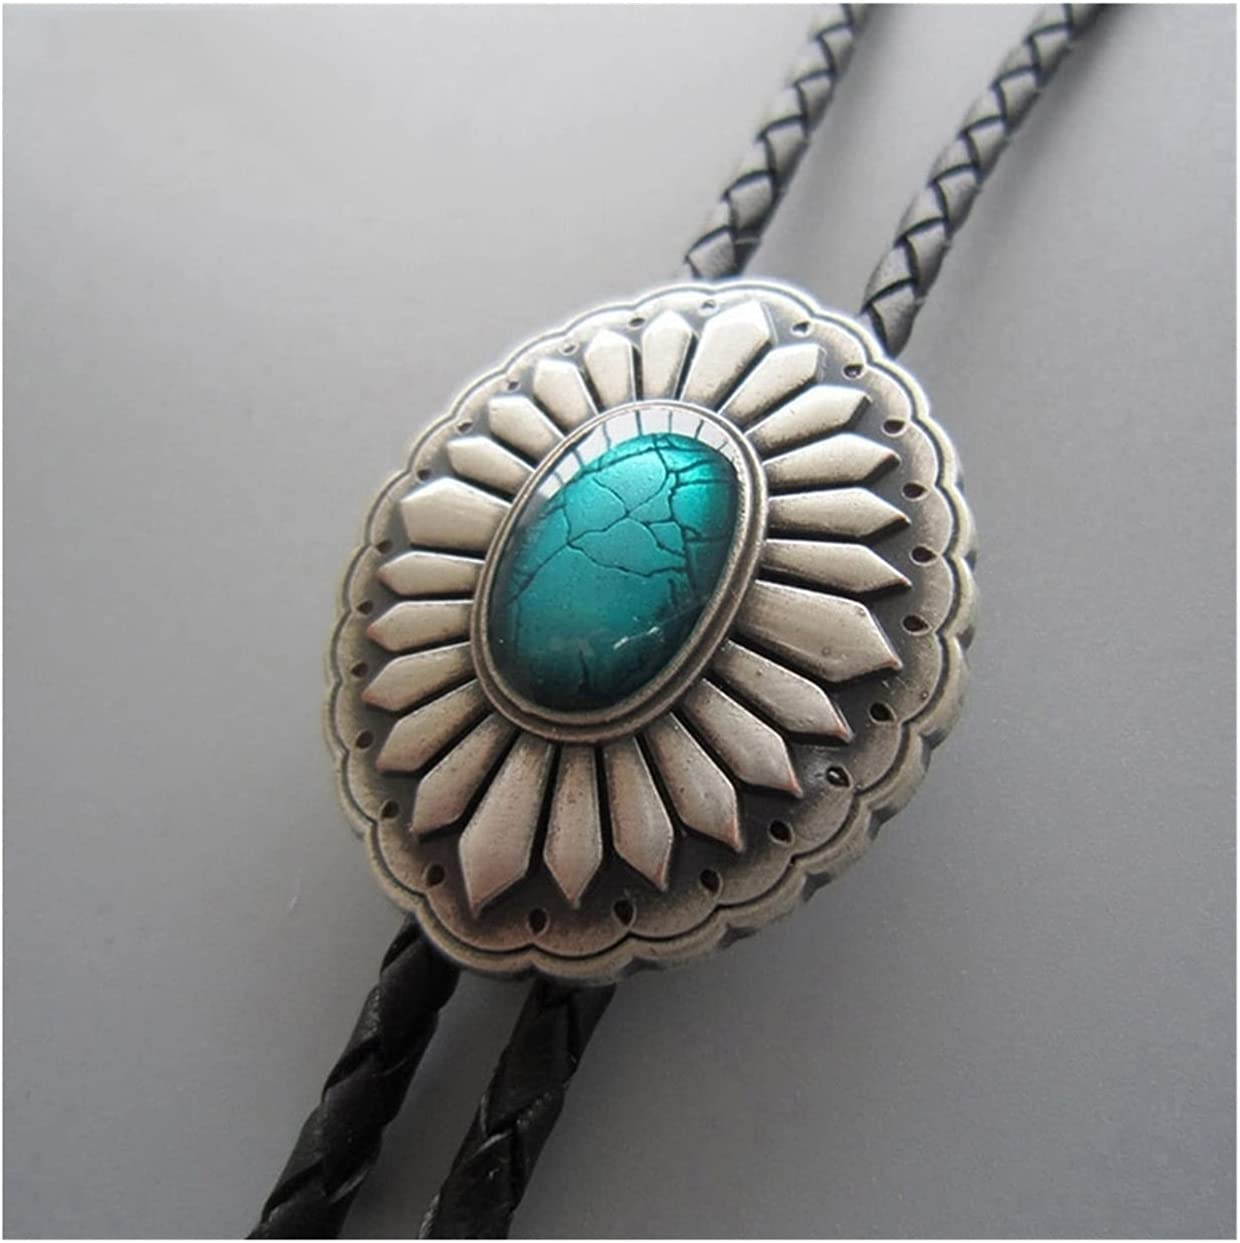 gujiu Western Denim bolo tie Natural Turquoise Stone Bolo Tie Native American Western Cowboy Handmade Leather Neutral British Style, Suitable for Men and Women